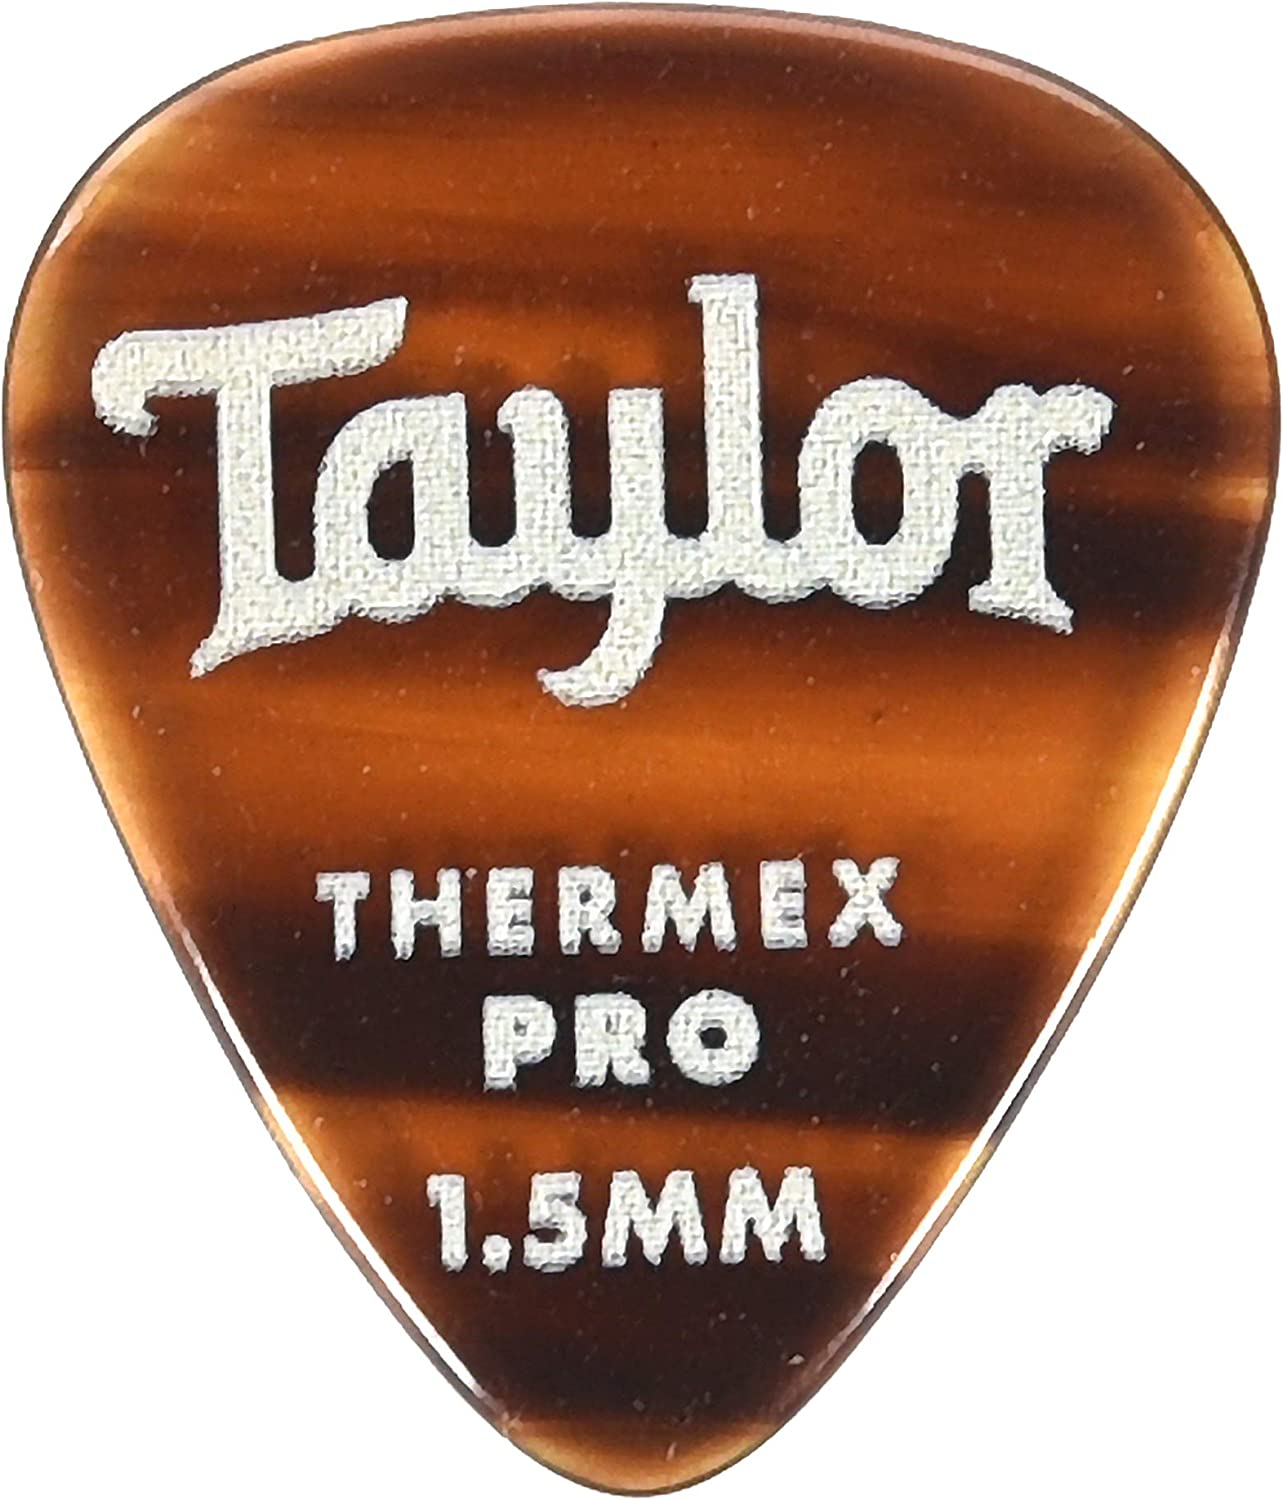 Max 88% OFF Taylor Premium Darktone 351 Thermex Free shipping anywhere in the nation Tortoise Picks 1.5 Shell Pro